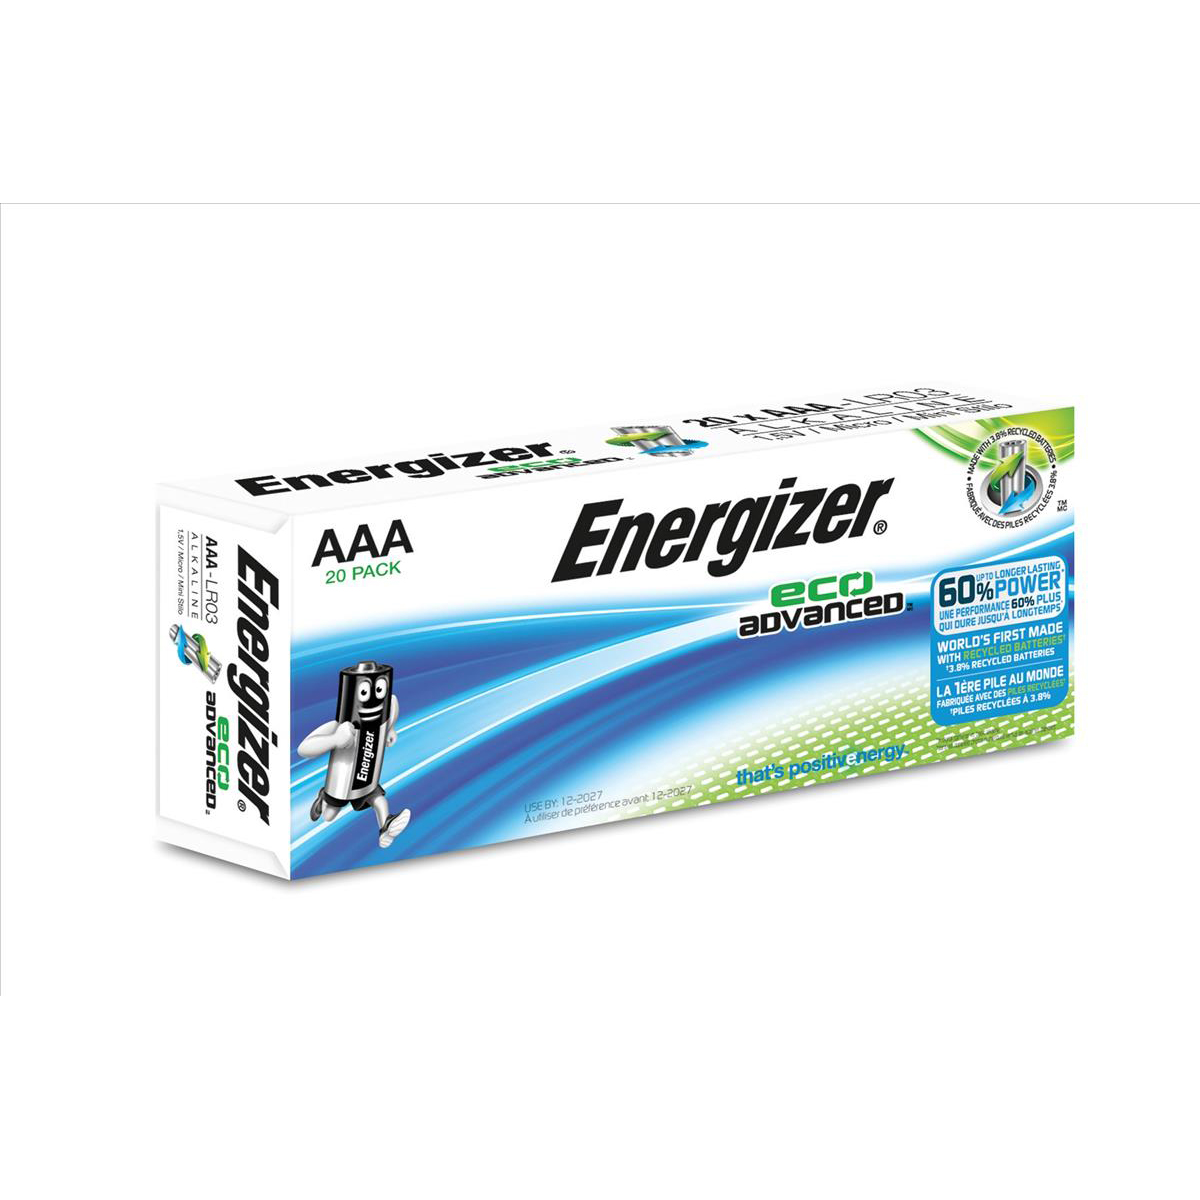 Energizer Eco Advance Batteries AAA / E92 Ref E300488000 Pack 20